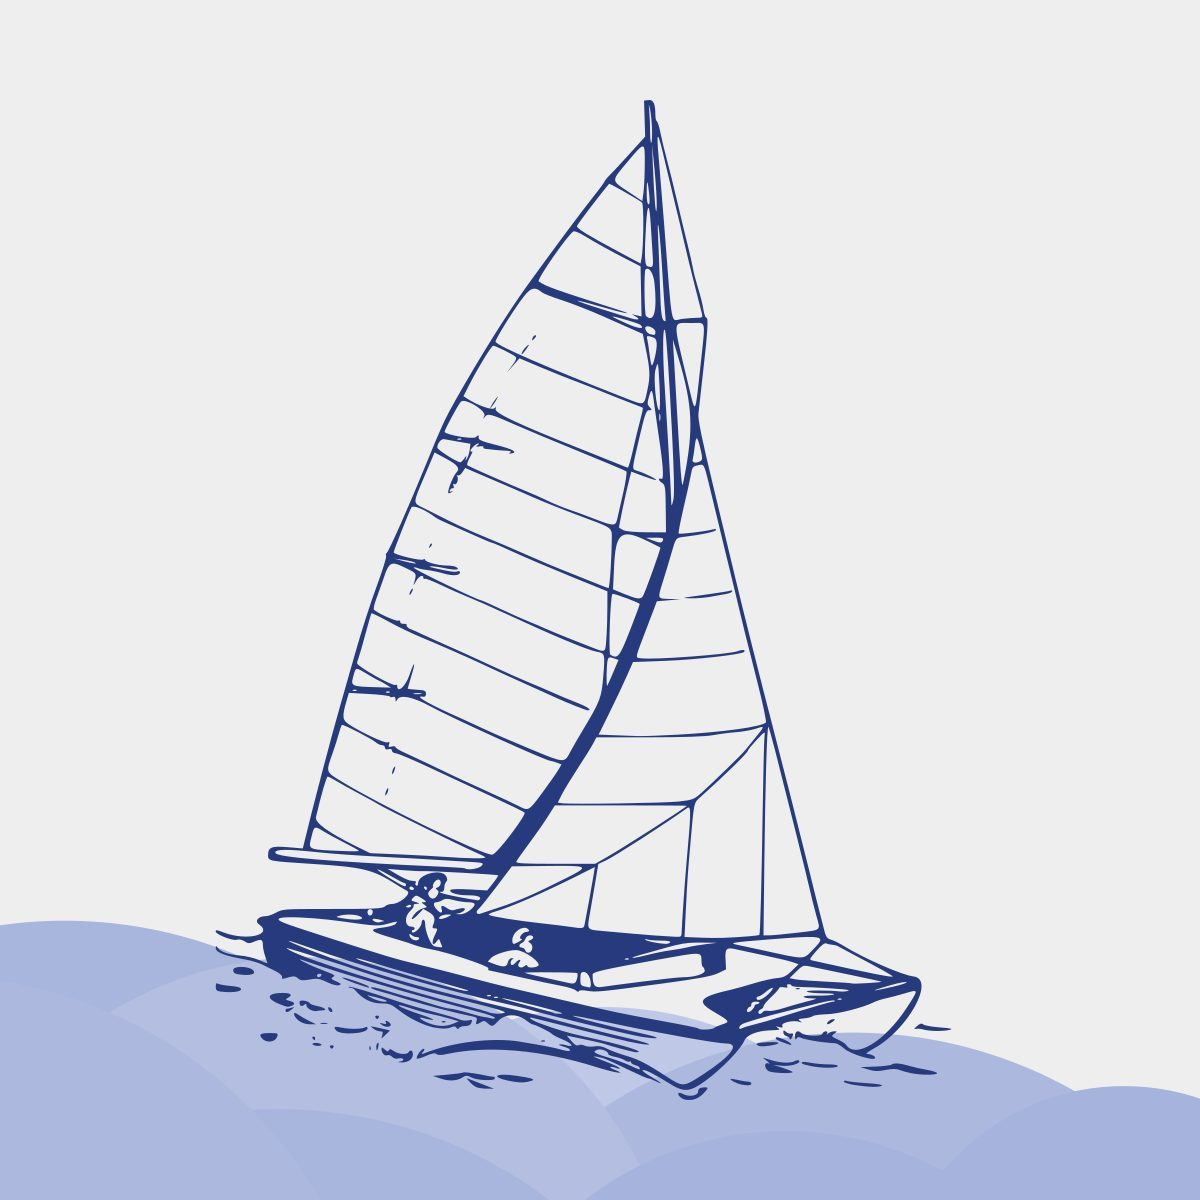 Boat illustration 2